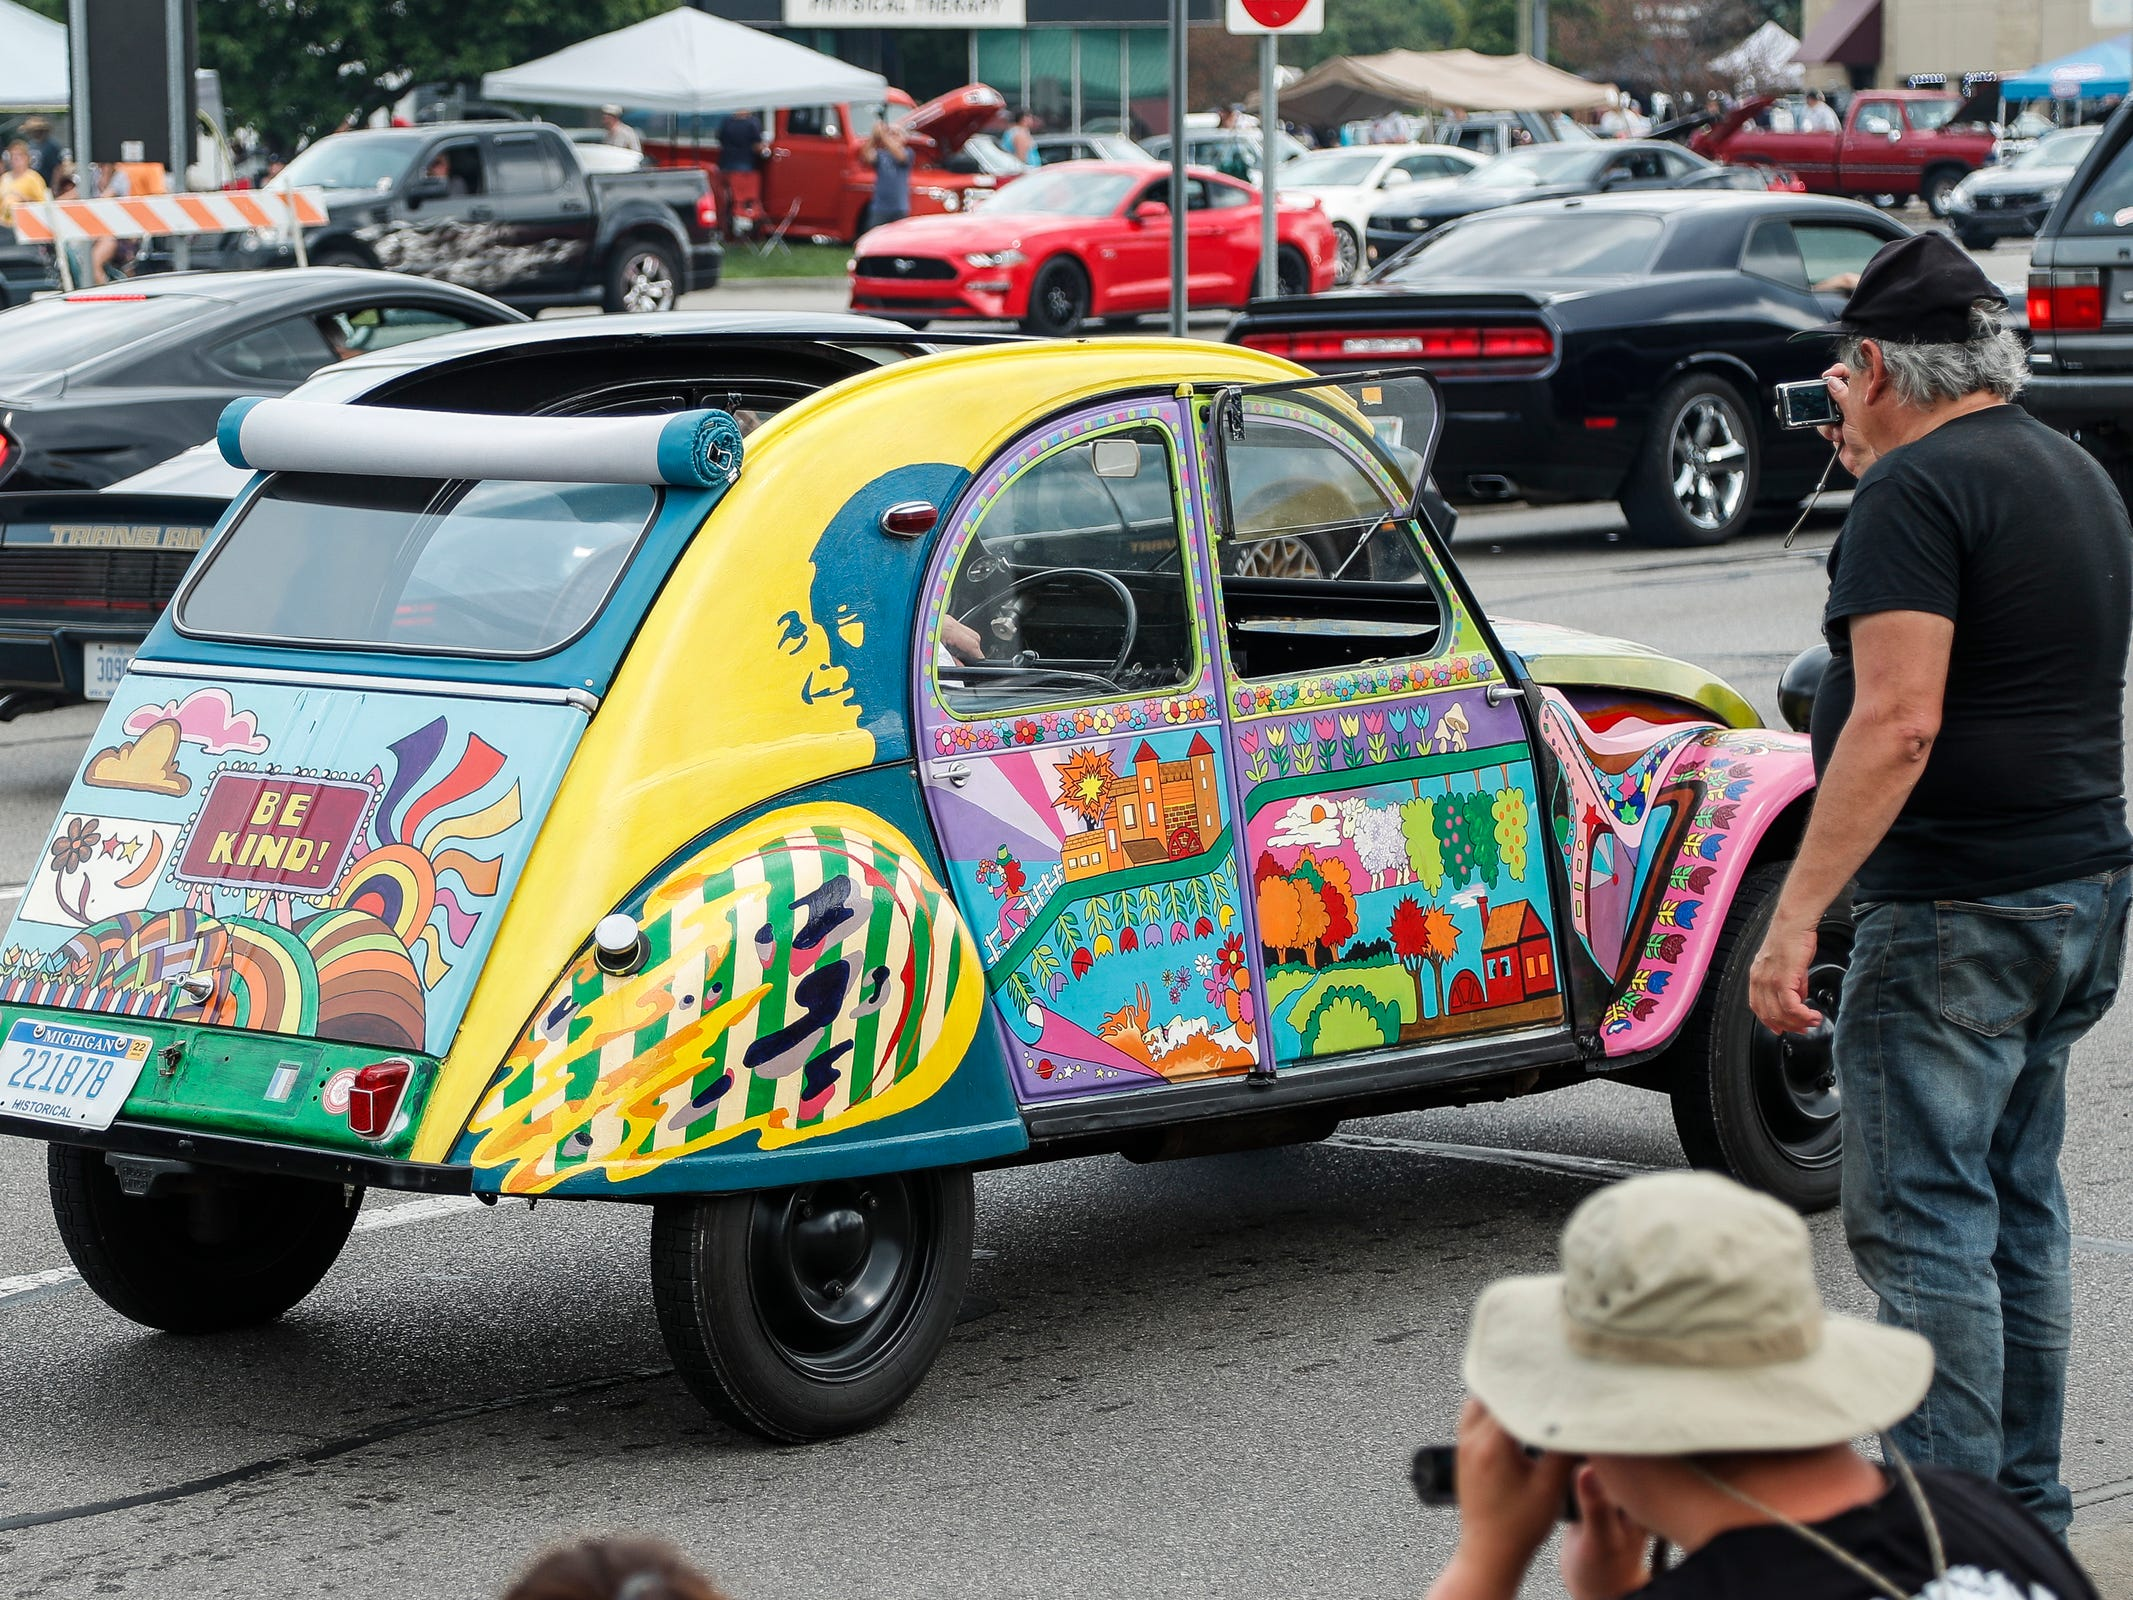 Steve Goldsmith of Long Island, N.Y., takes photos of a colorfully decorated car on Woodward Avenue in Royal Oak during the Woodward Dream Cruise, Saturday, August 18, 2018.